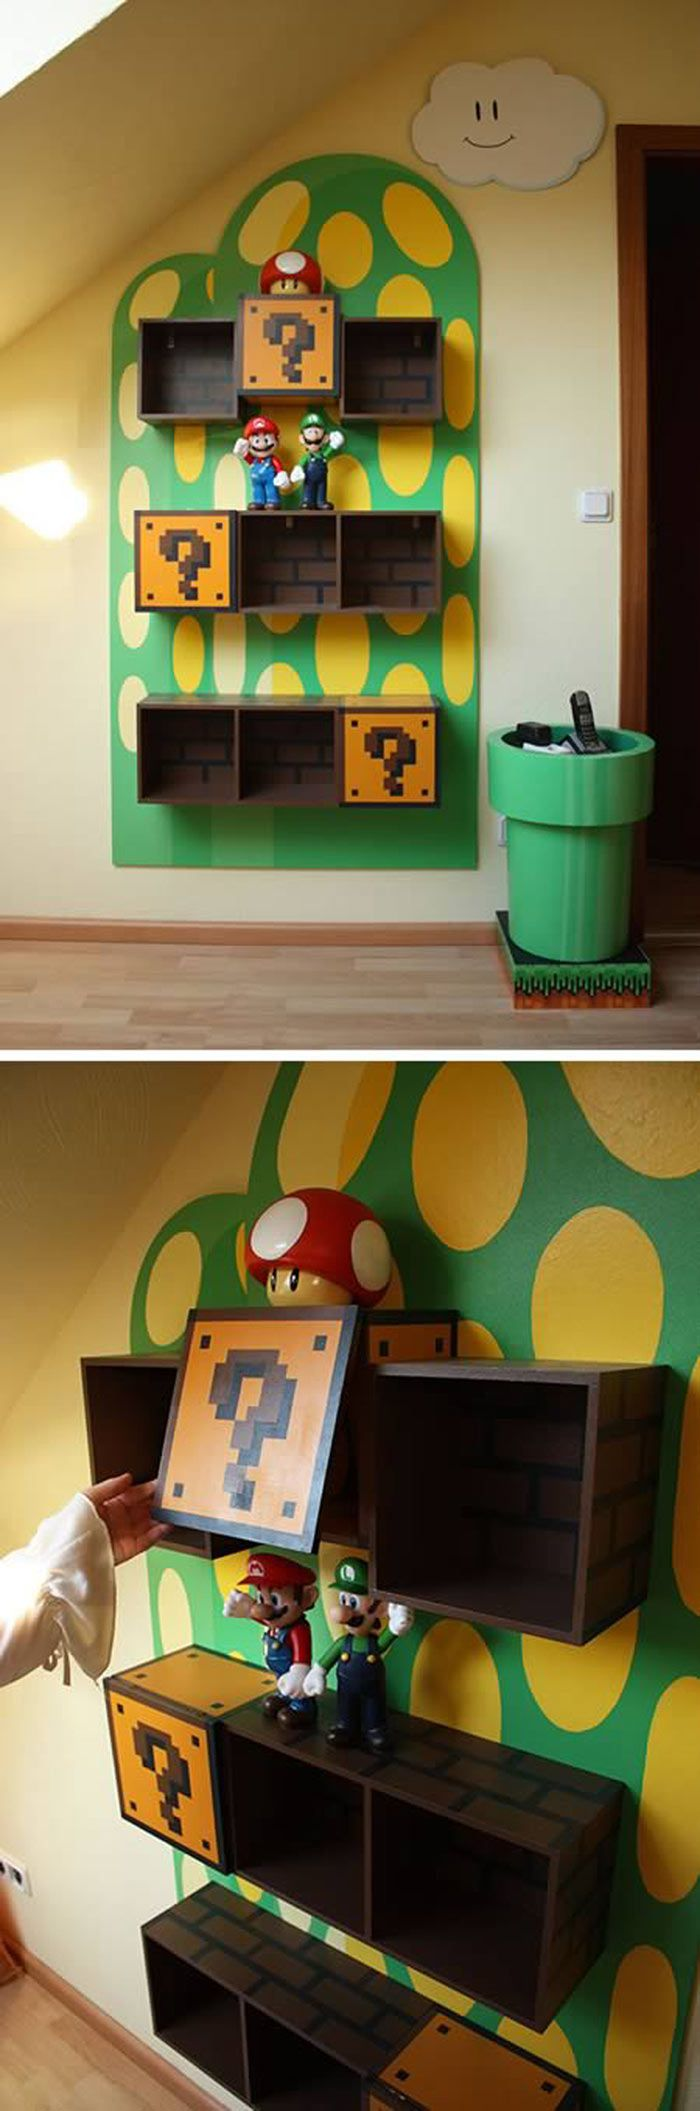 Gorgeously Geeky Pieces of Furniture That Will Inspire Your Inner